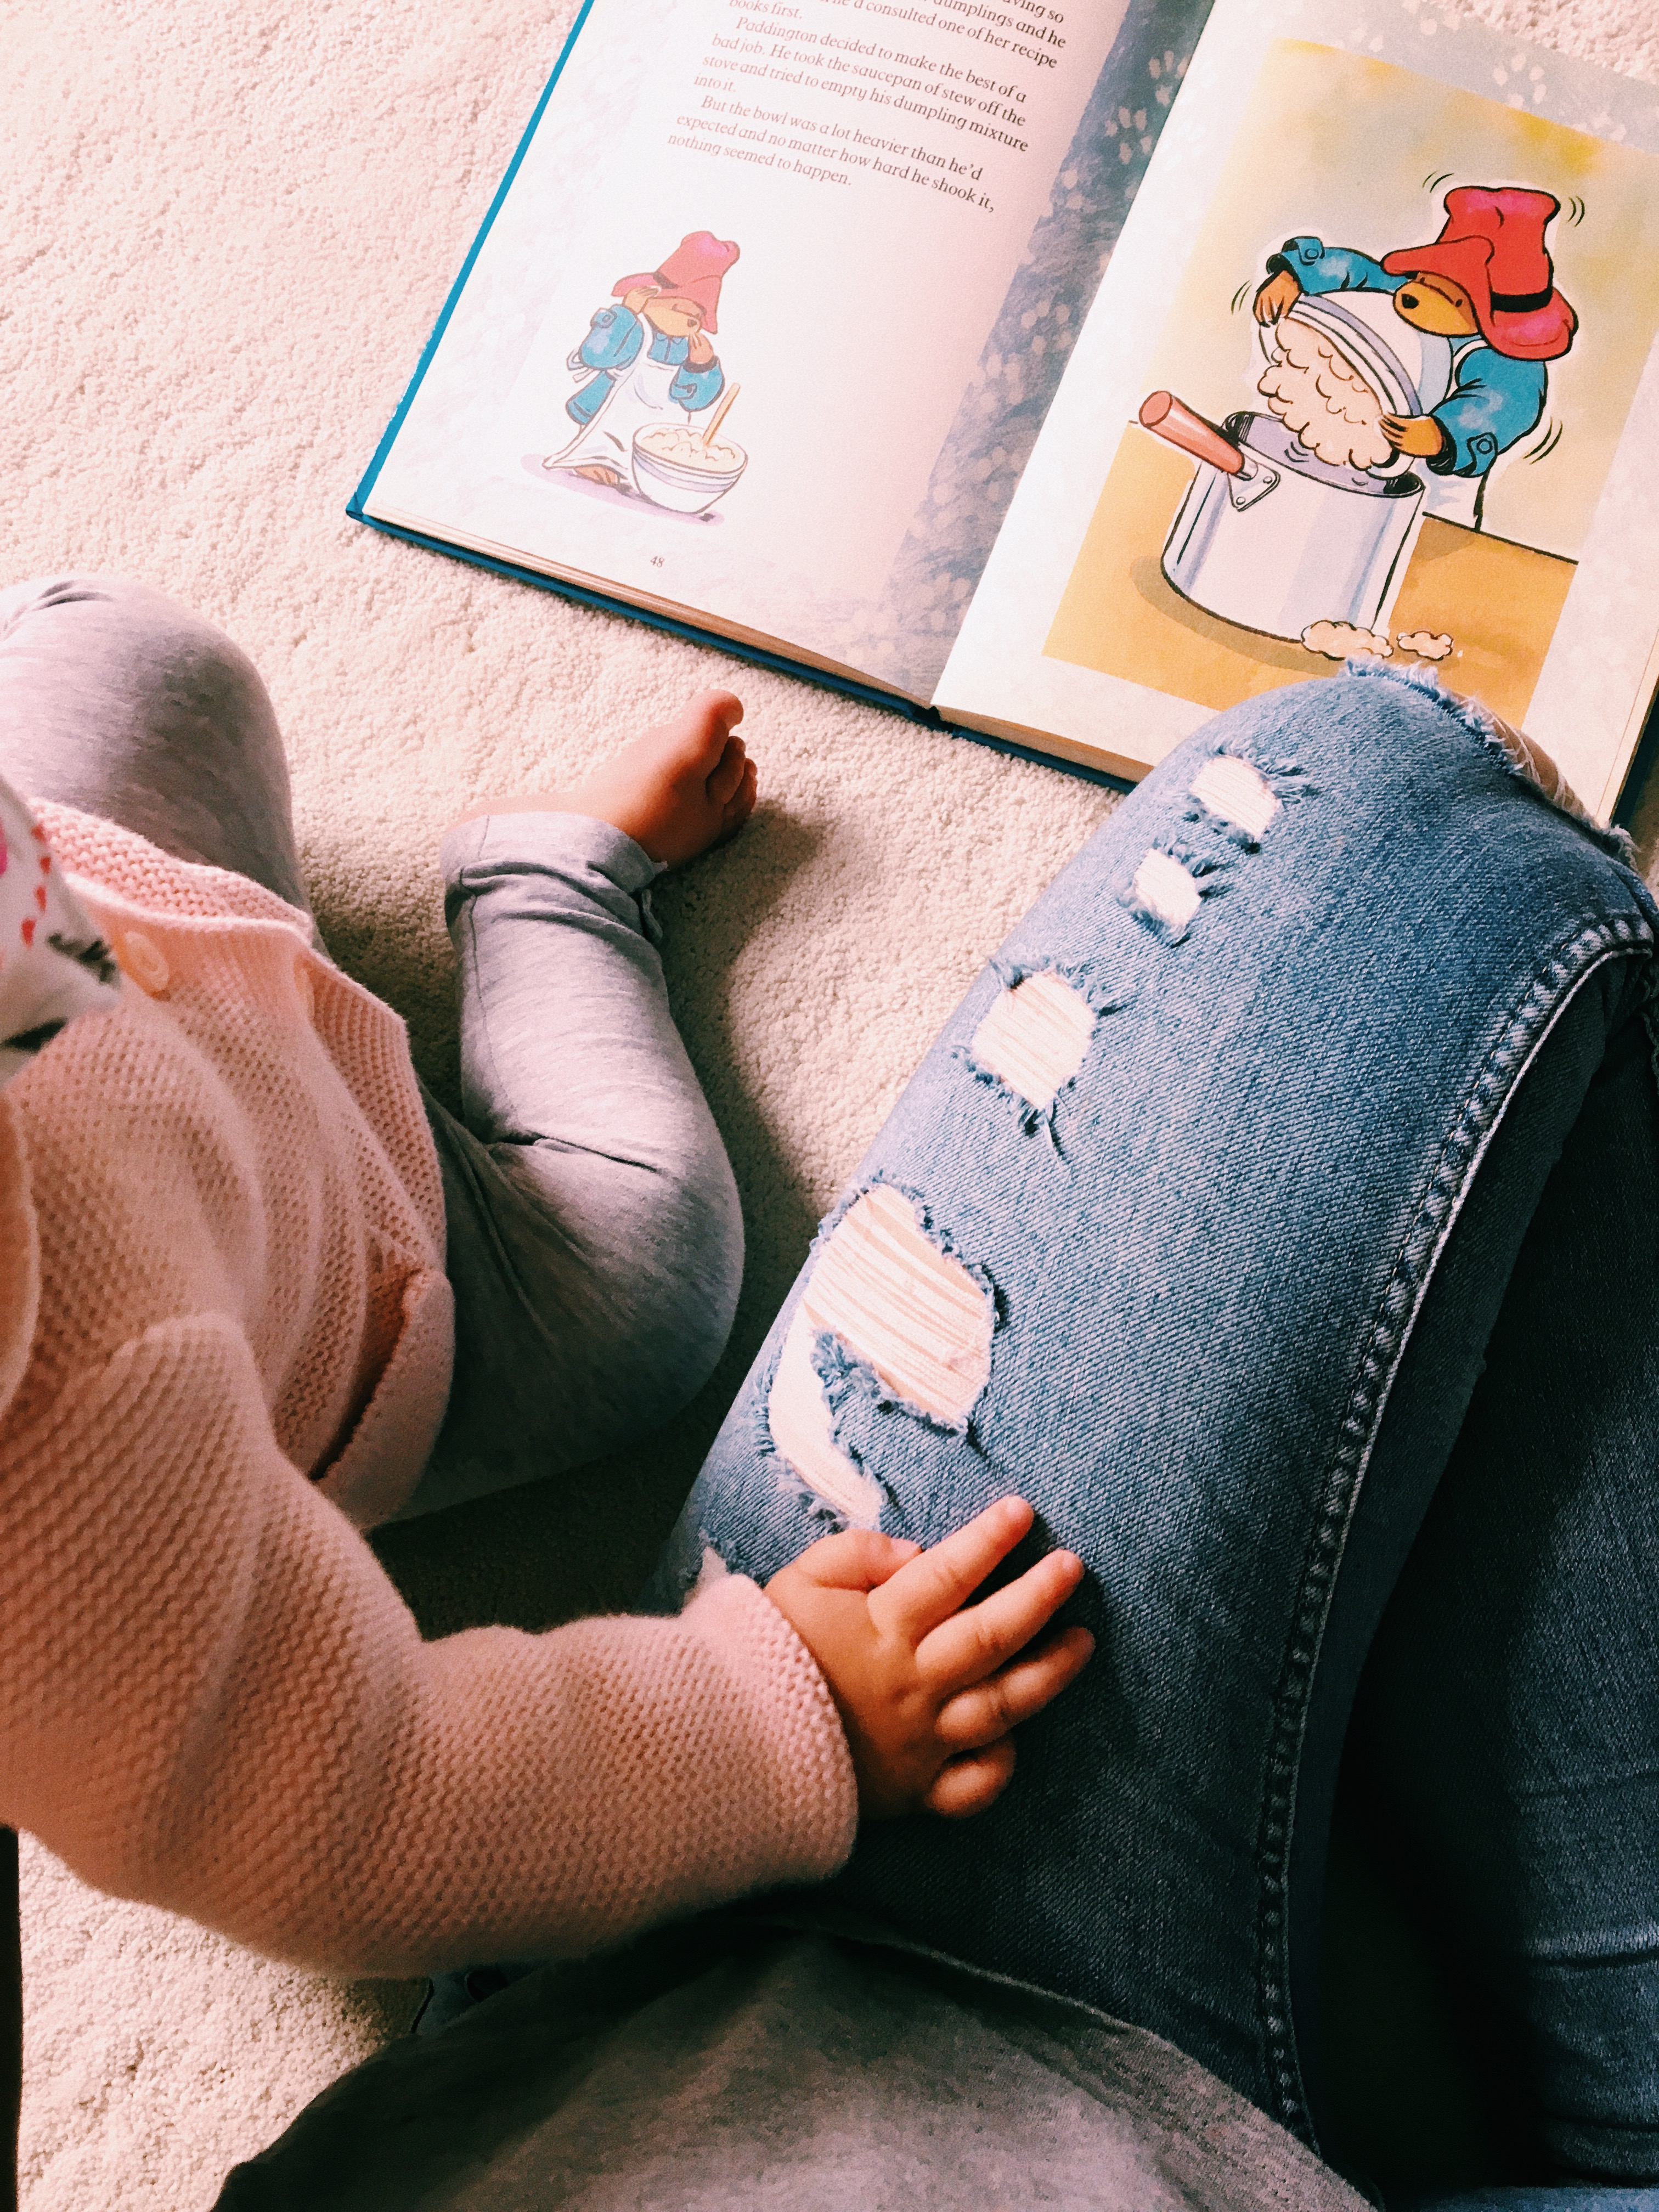 A calm moment reading a book with my daughter in her nursery